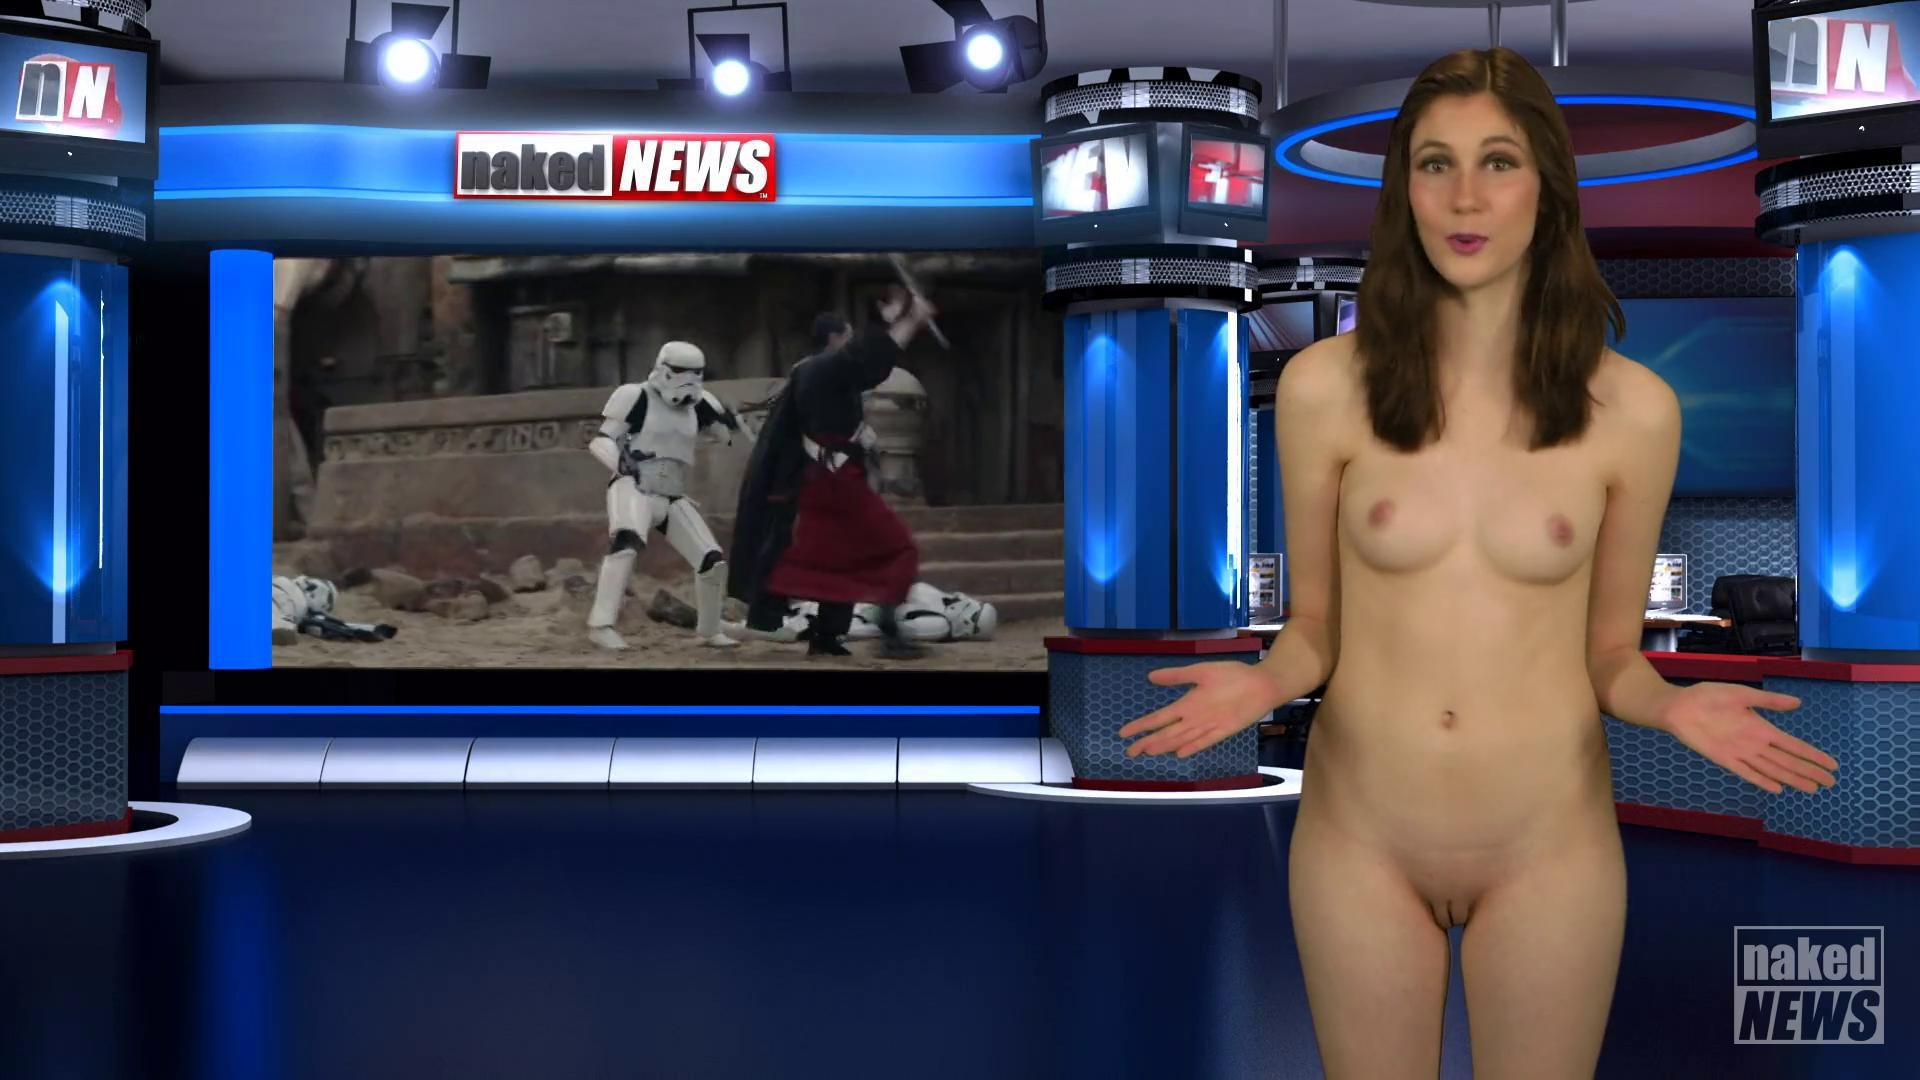 Katie couric naked news